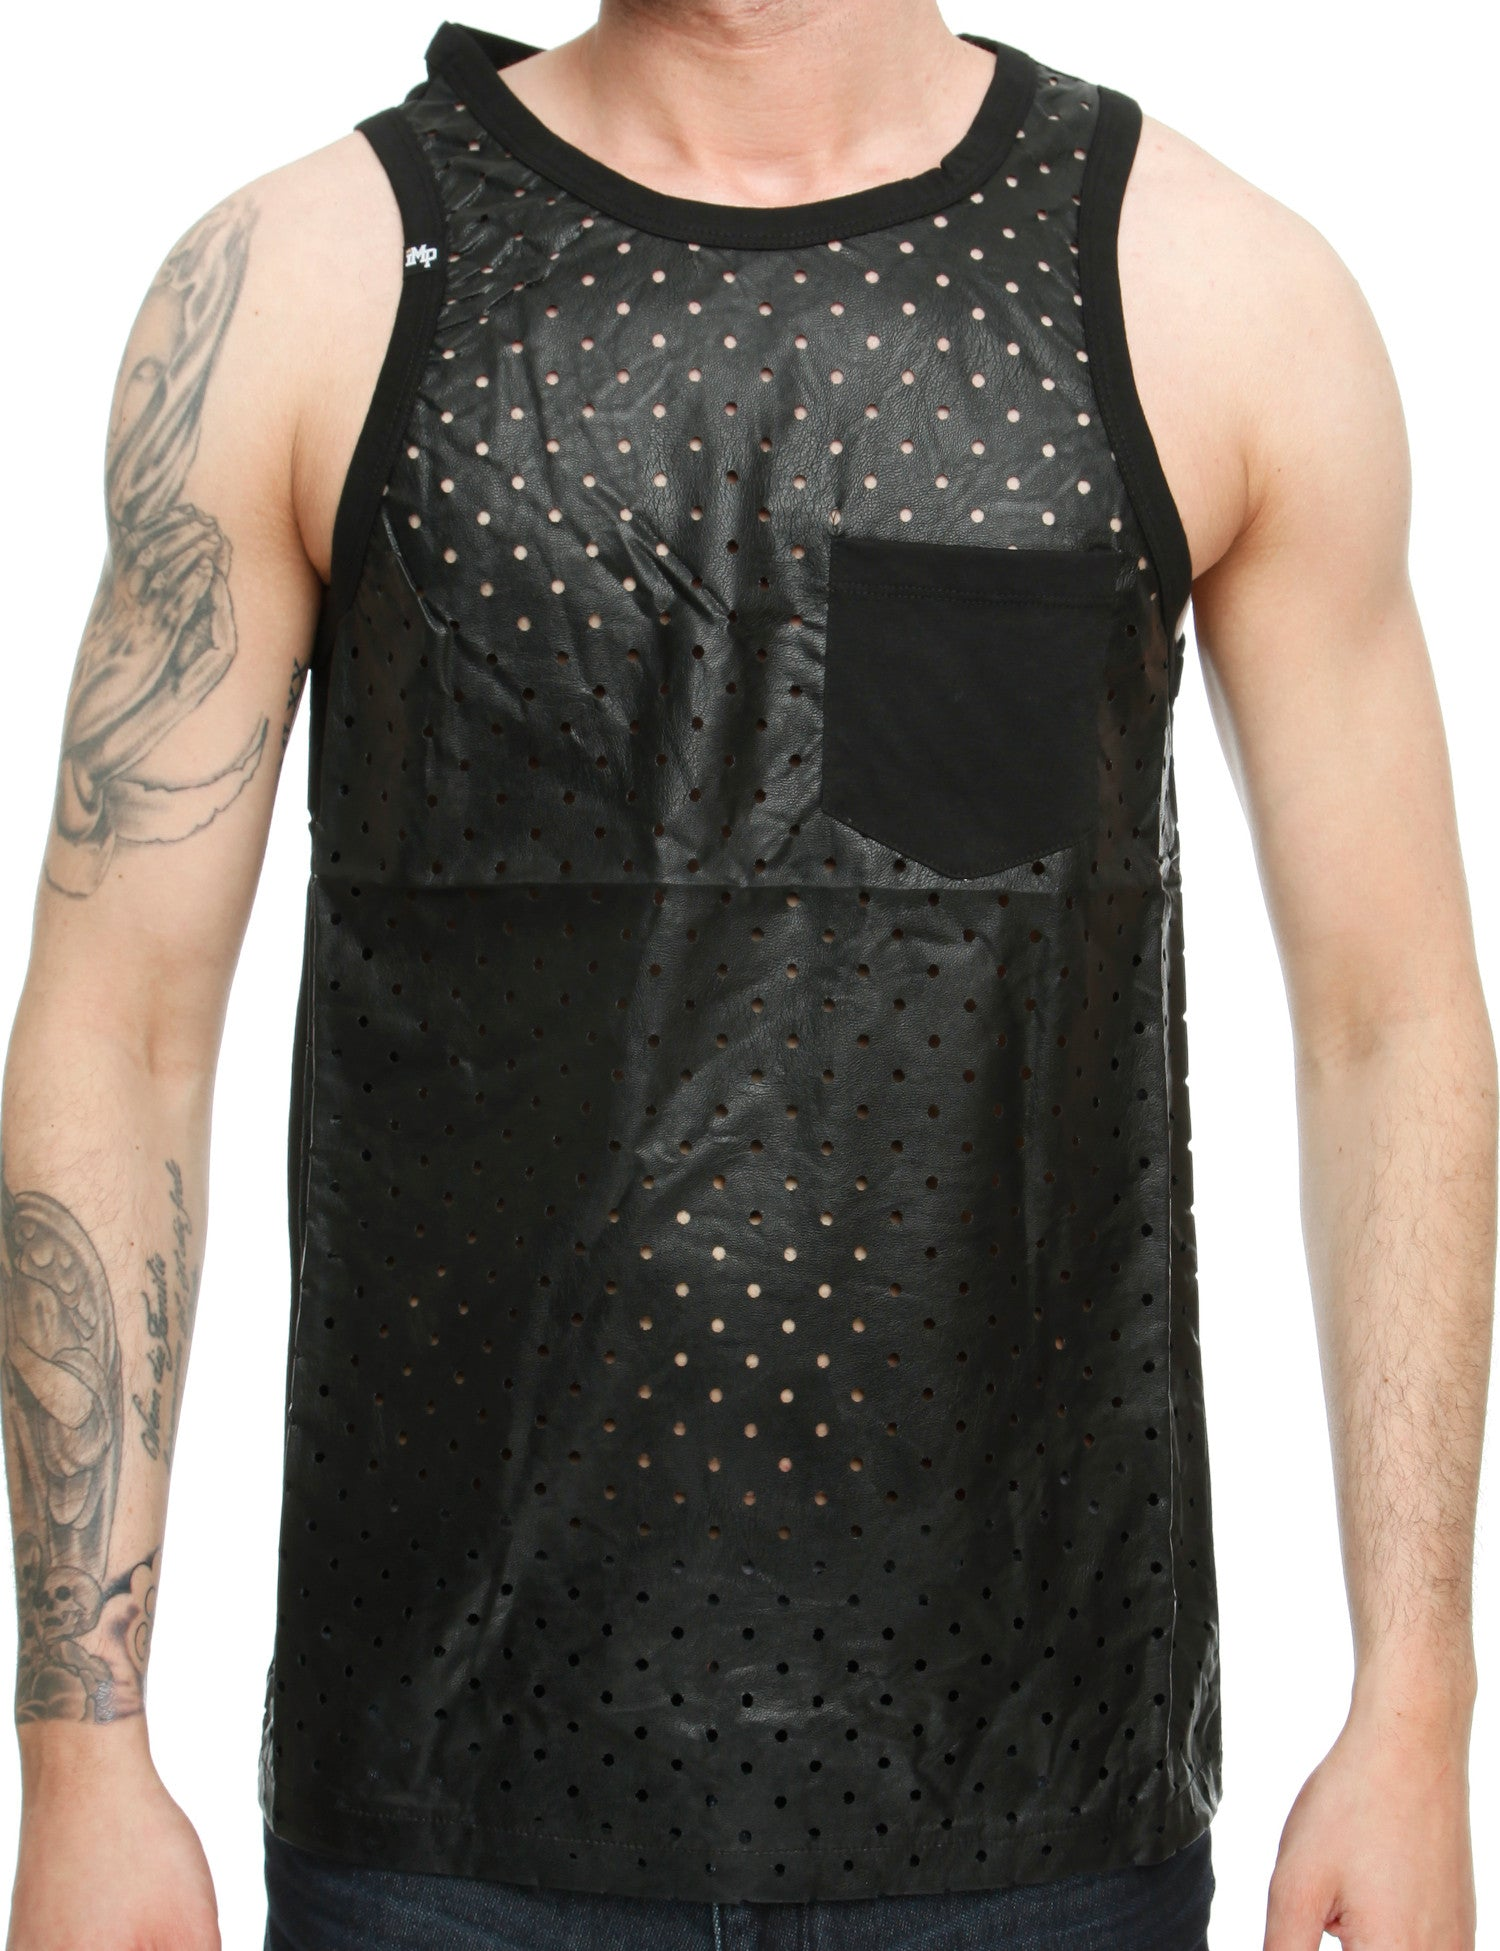 Imperious Tank Top TT35 Black